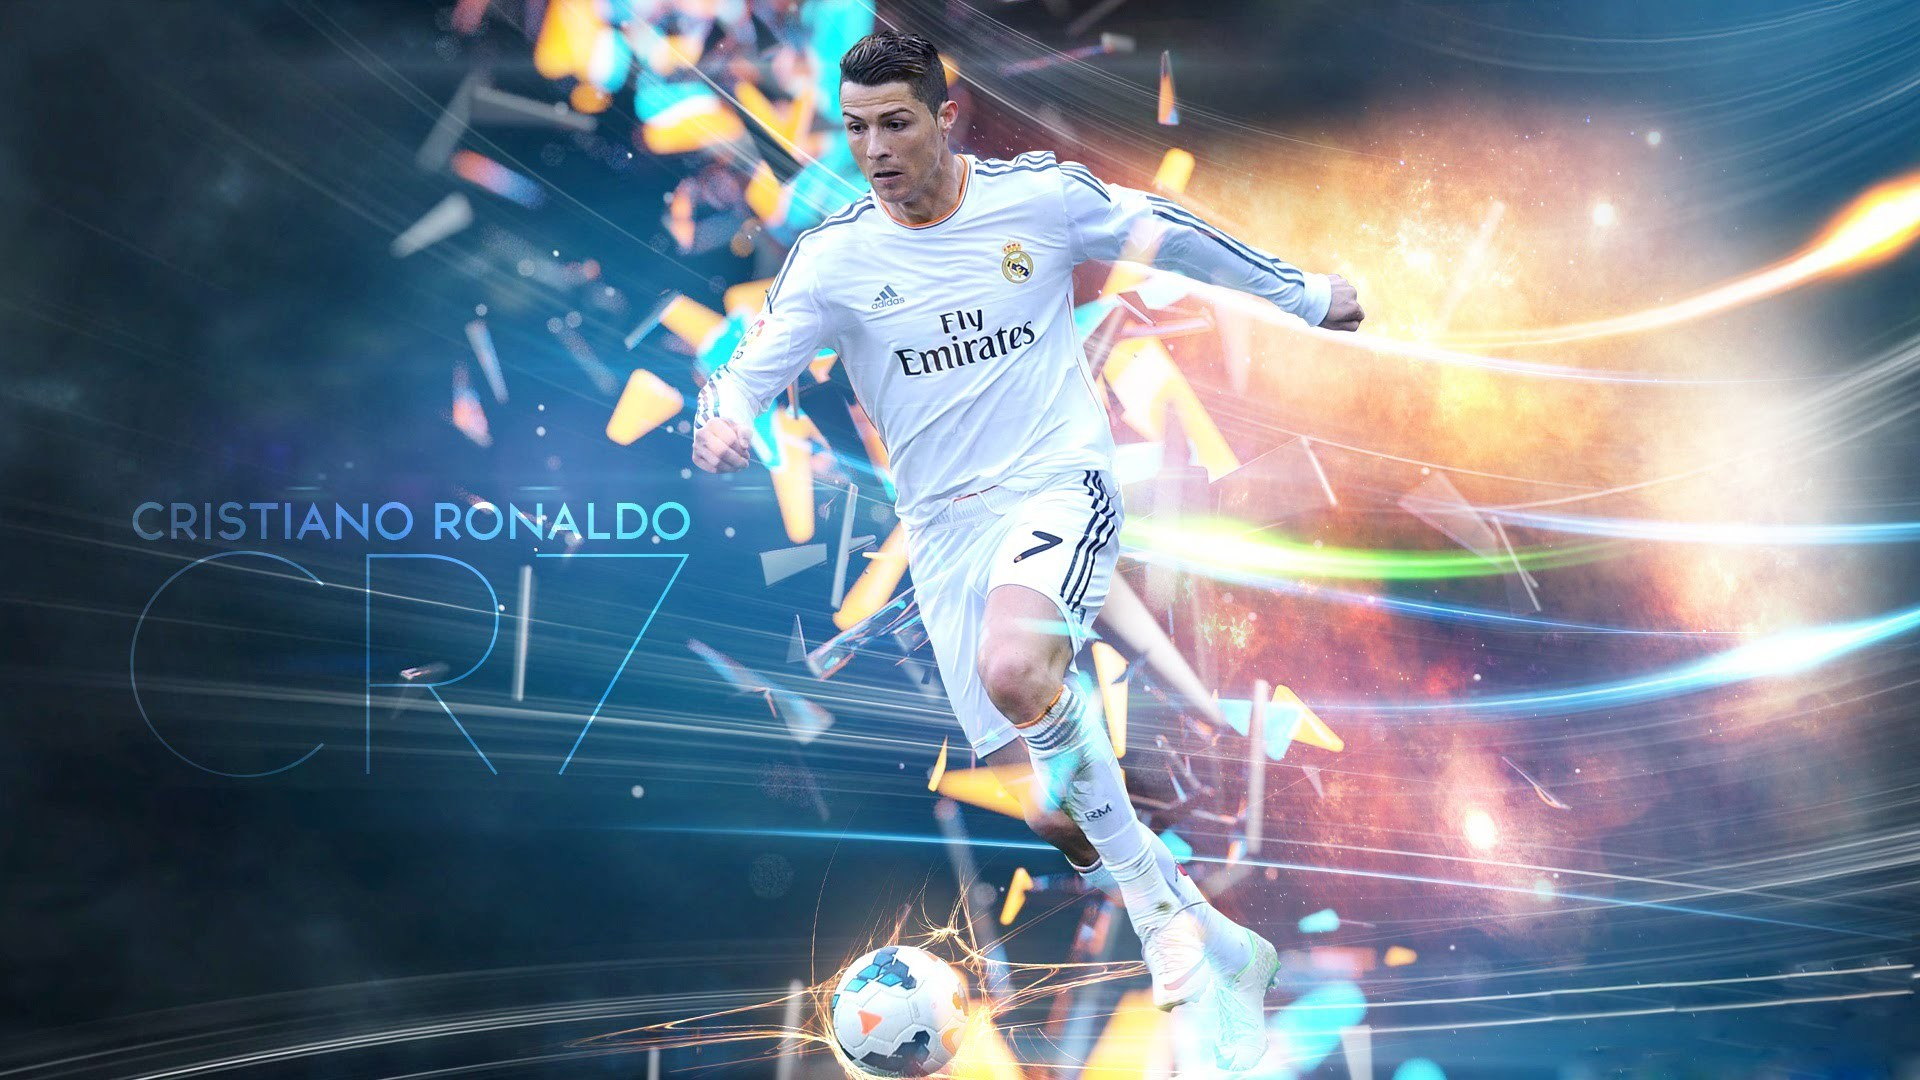 cristiano ronaldo 7 wallpapers (75+ background pictures)